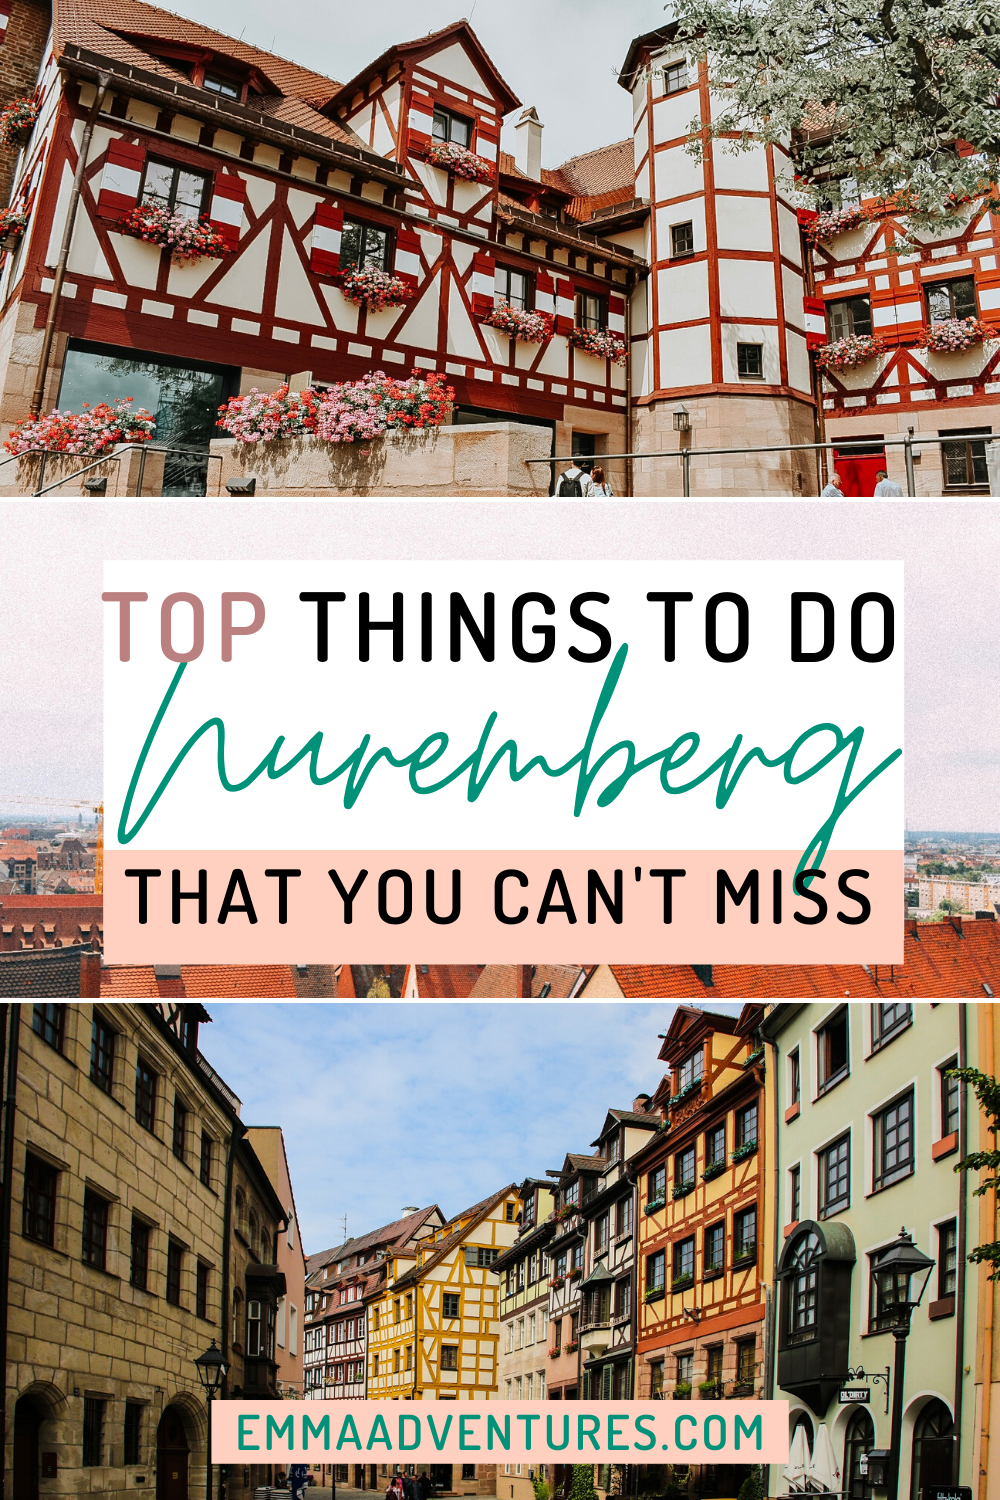 The best things to do in Nuremberg, Germany that you can't miss! The best things to see and do in Nuremberg, plus where to eat and drink! #nuremberg #germany #germanytravel